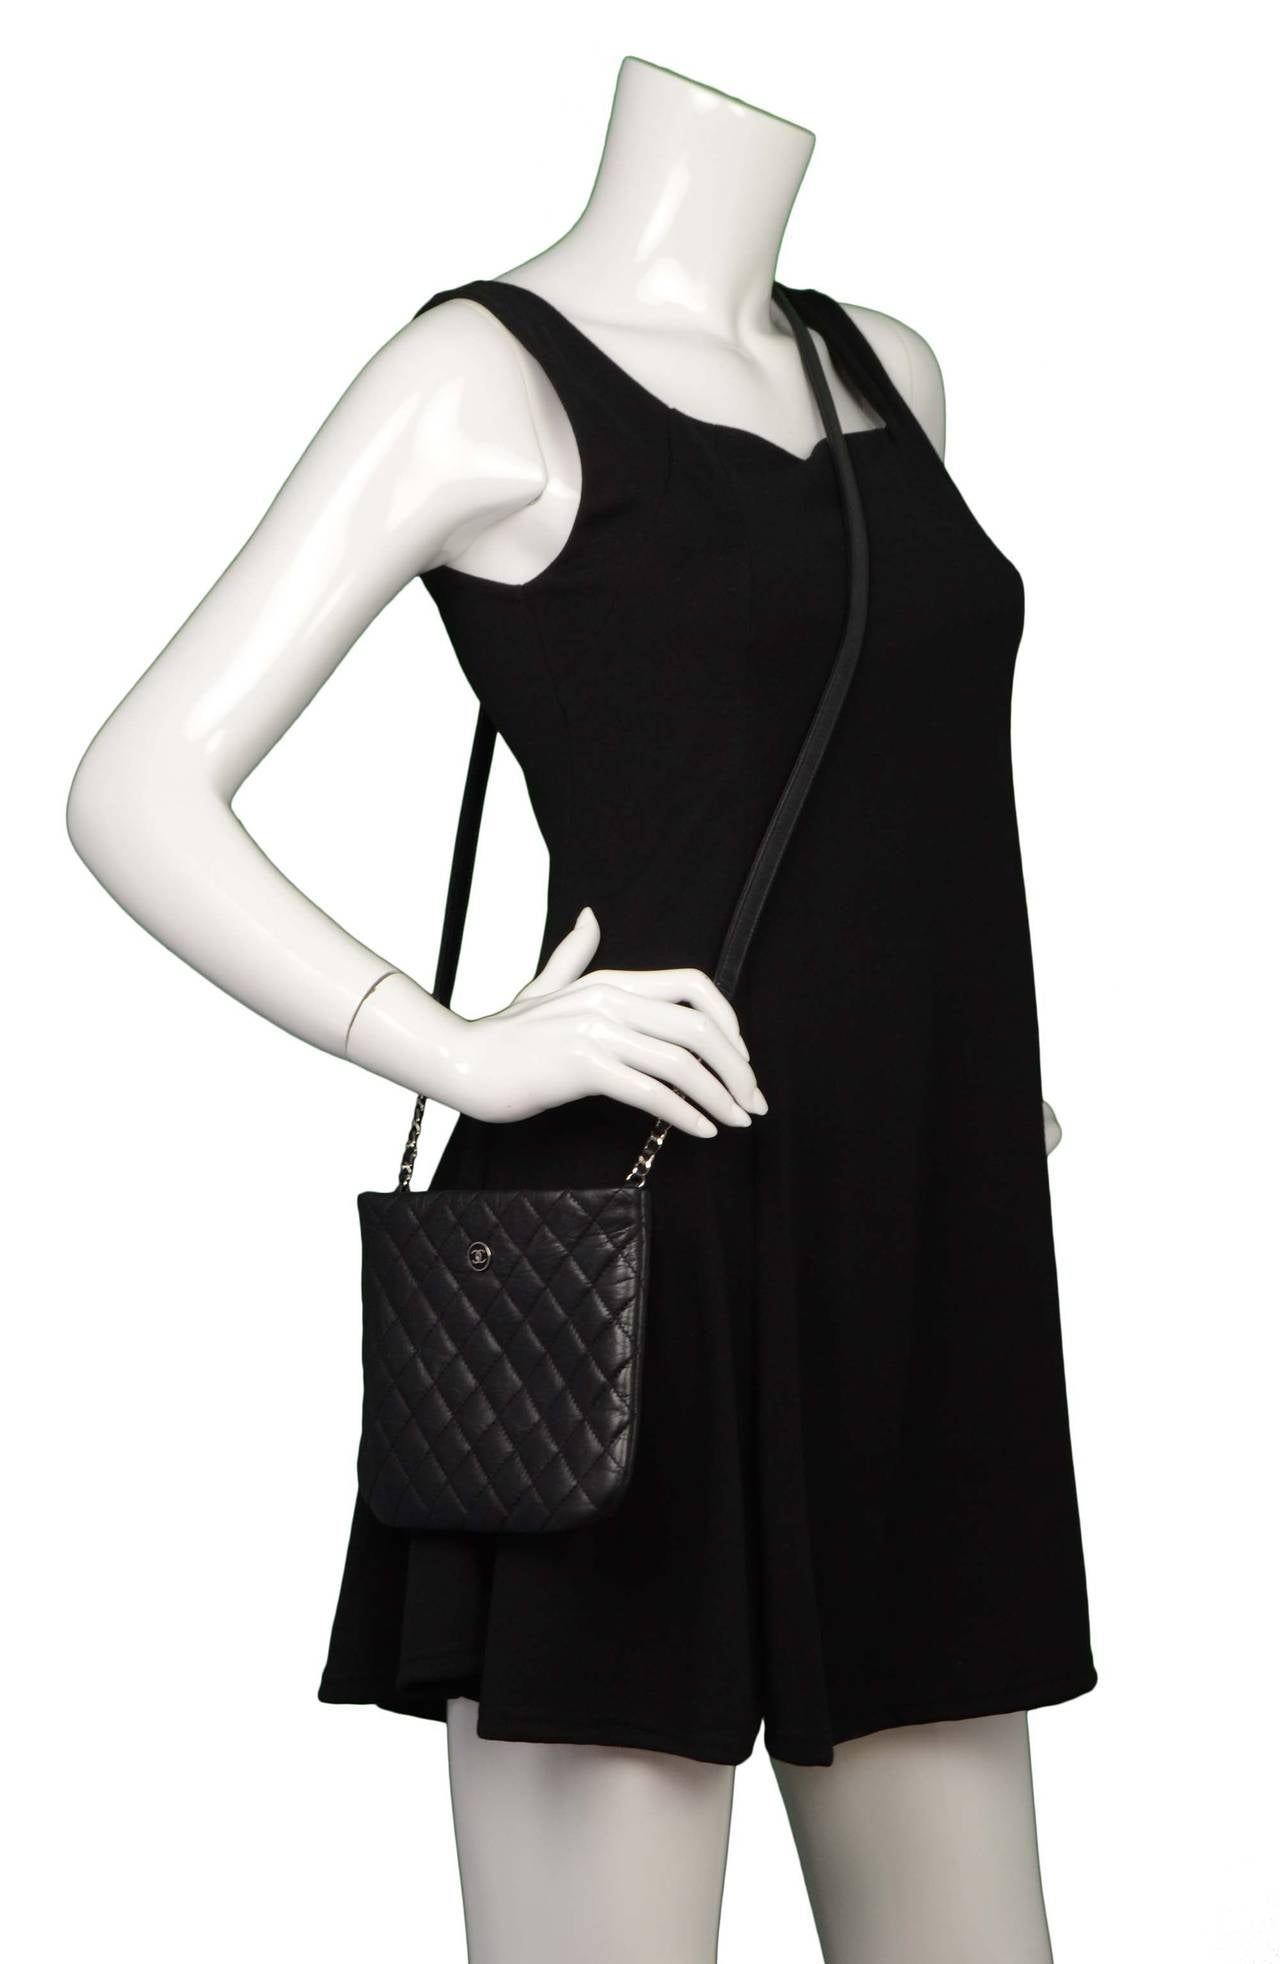 b7a14c8840a4 CHANEL Black Quilted Distressed Leather Small Crossbody Bag SHW For Sale 6